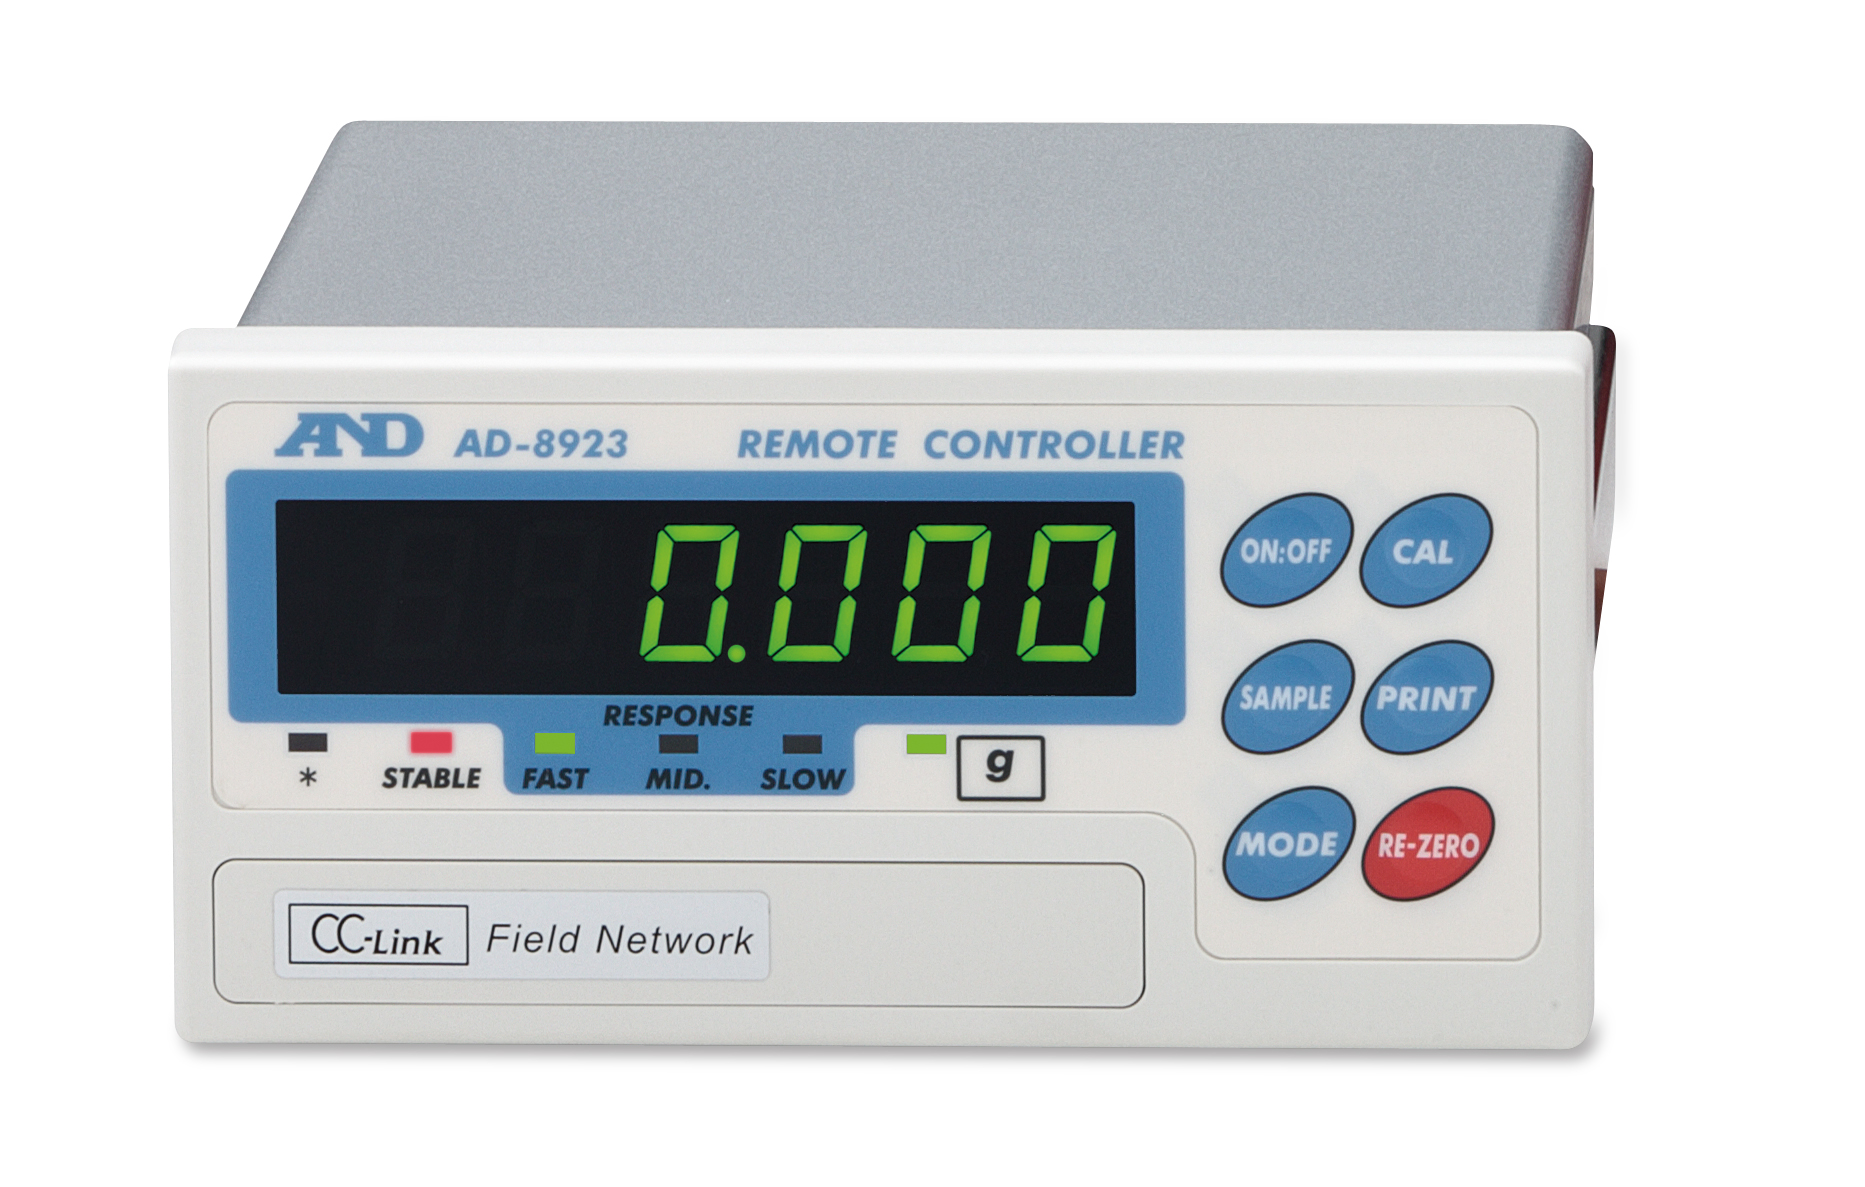 AD-8923 Remote Display & Controller with CC-Link Output - Option